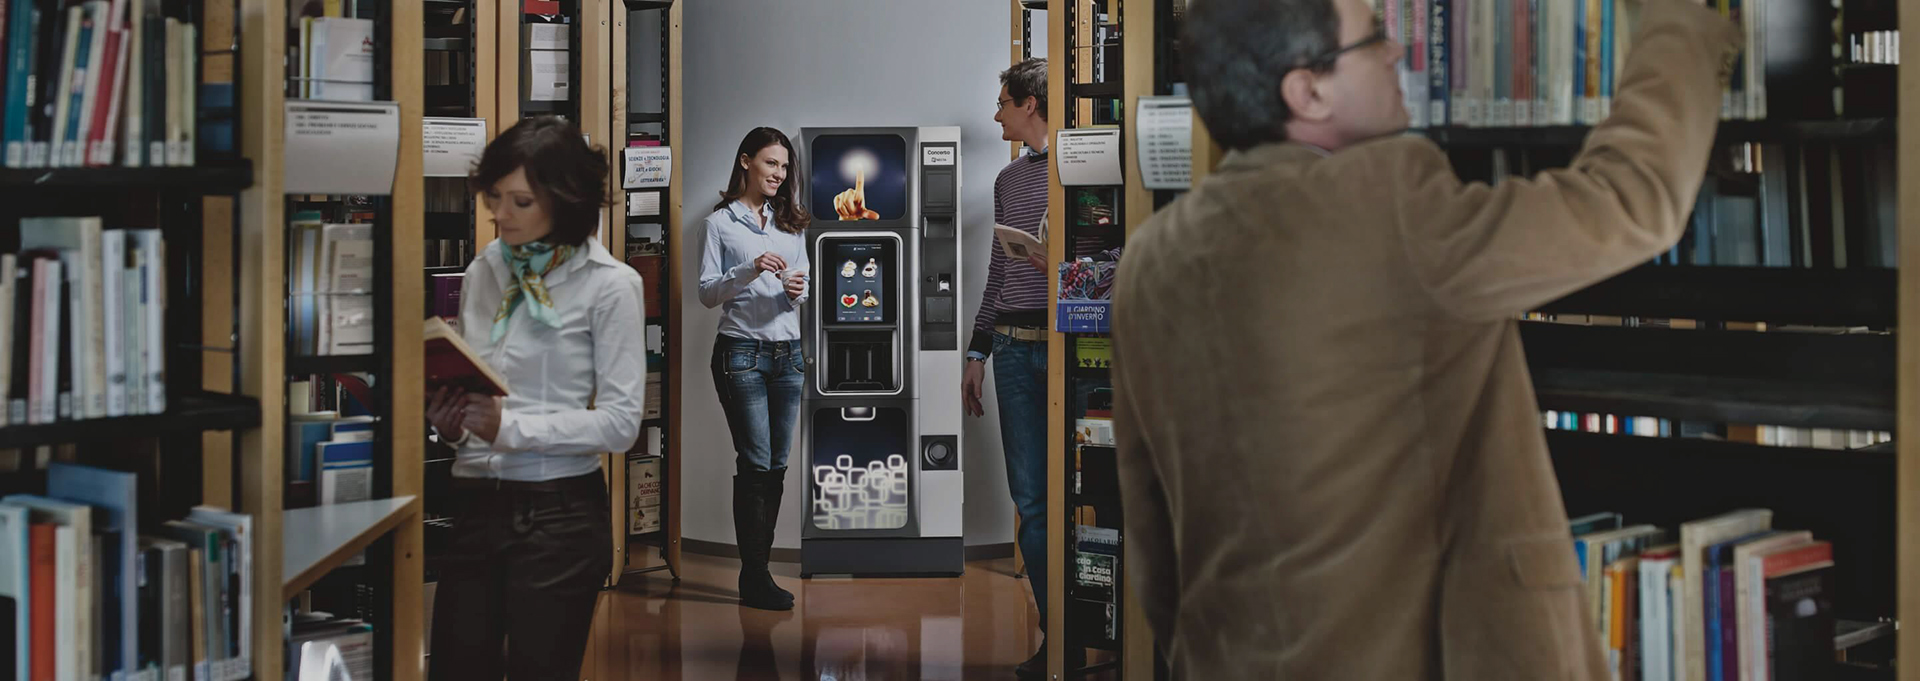 vending-machine-in-office